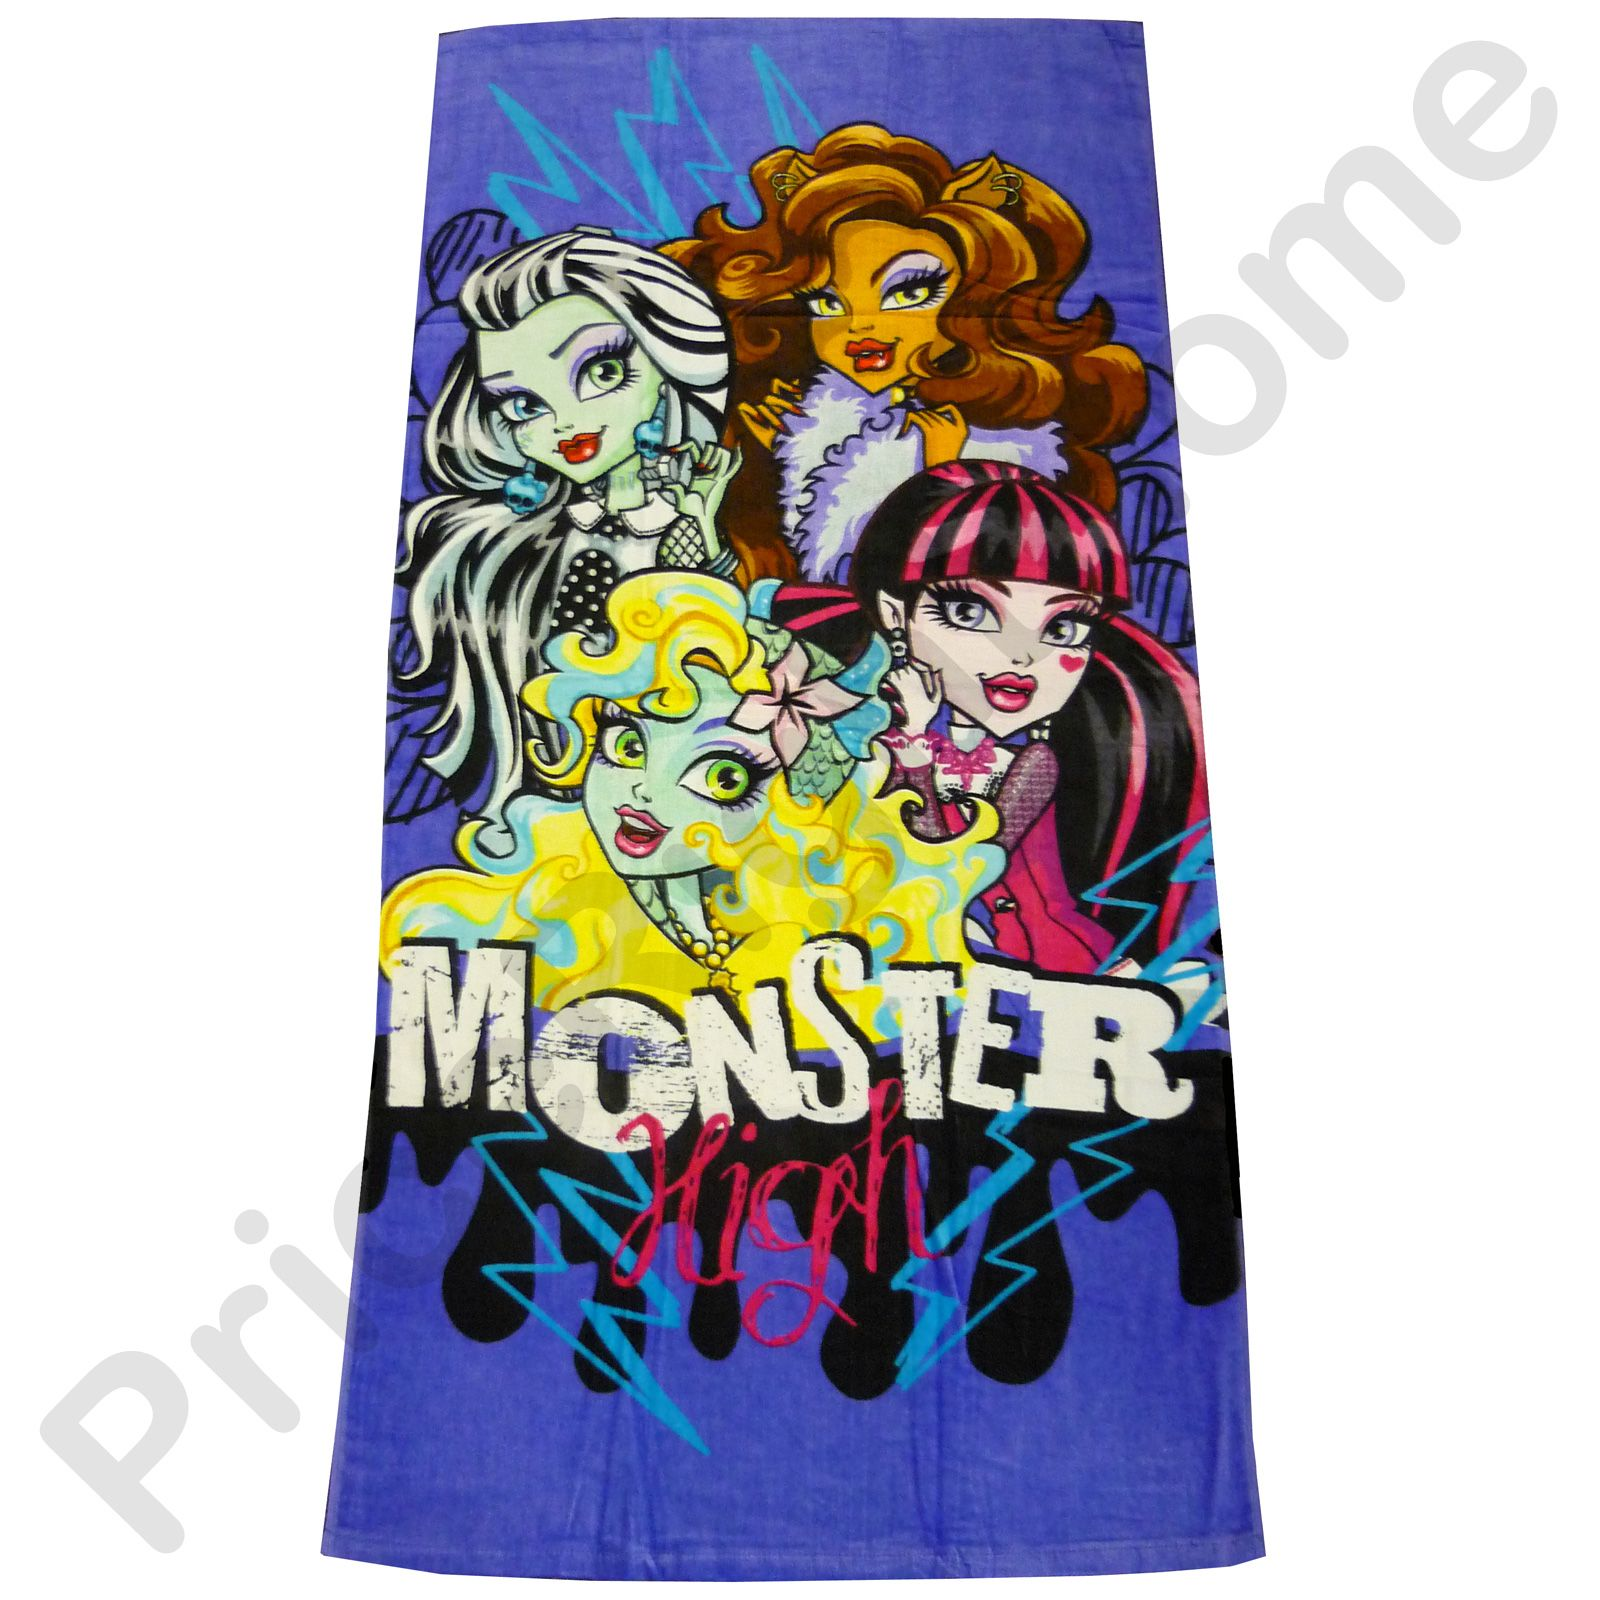 Beach Blanket Amazon Uk: MONSTER HIGH TOWELS & FACE CLOTHES KIDS BATH BEACH TOWEL